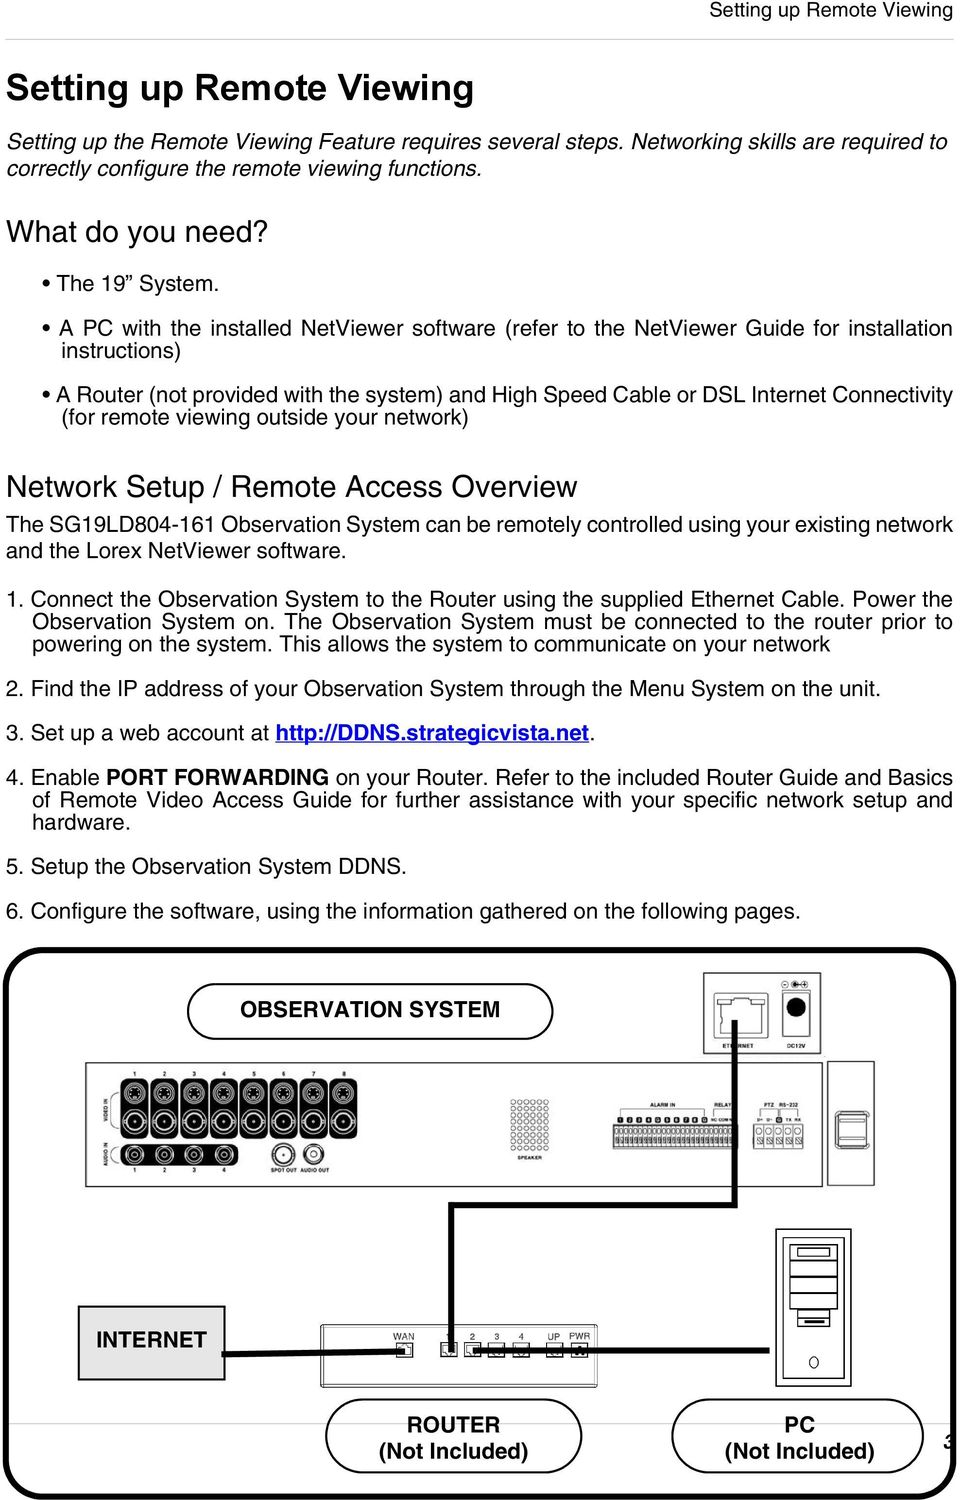 A PC with the installed NetViewer software (refer to the NetViewer Guide for installation instructions) A Router (not provided with the system) and High Speed Cable or DSL Internet Connectivity (for